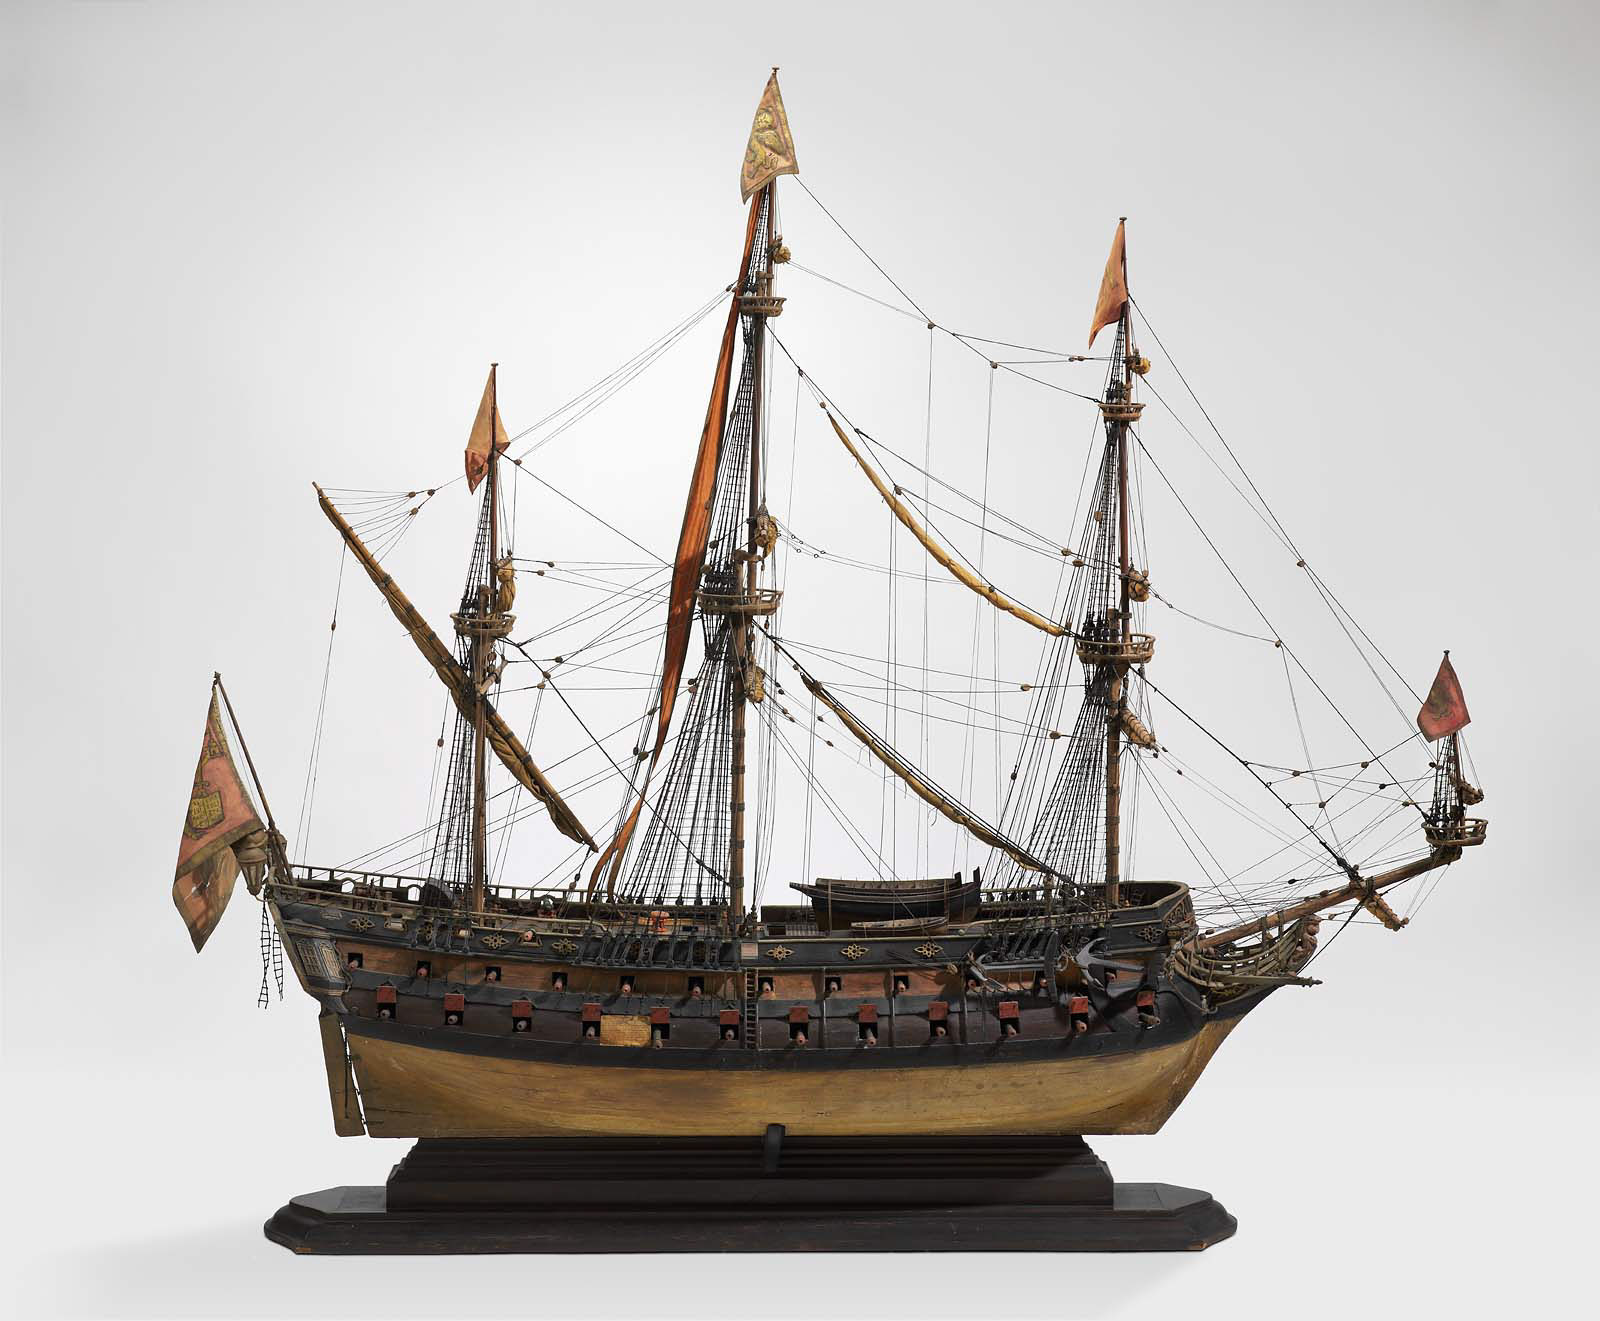 an analysis of the sailing ships of 19th century and the seamanship of clipper ships Anthony discusses the various types of ships used including 19th century merchant ships of sailing ships as clipper ships of the 19th century.